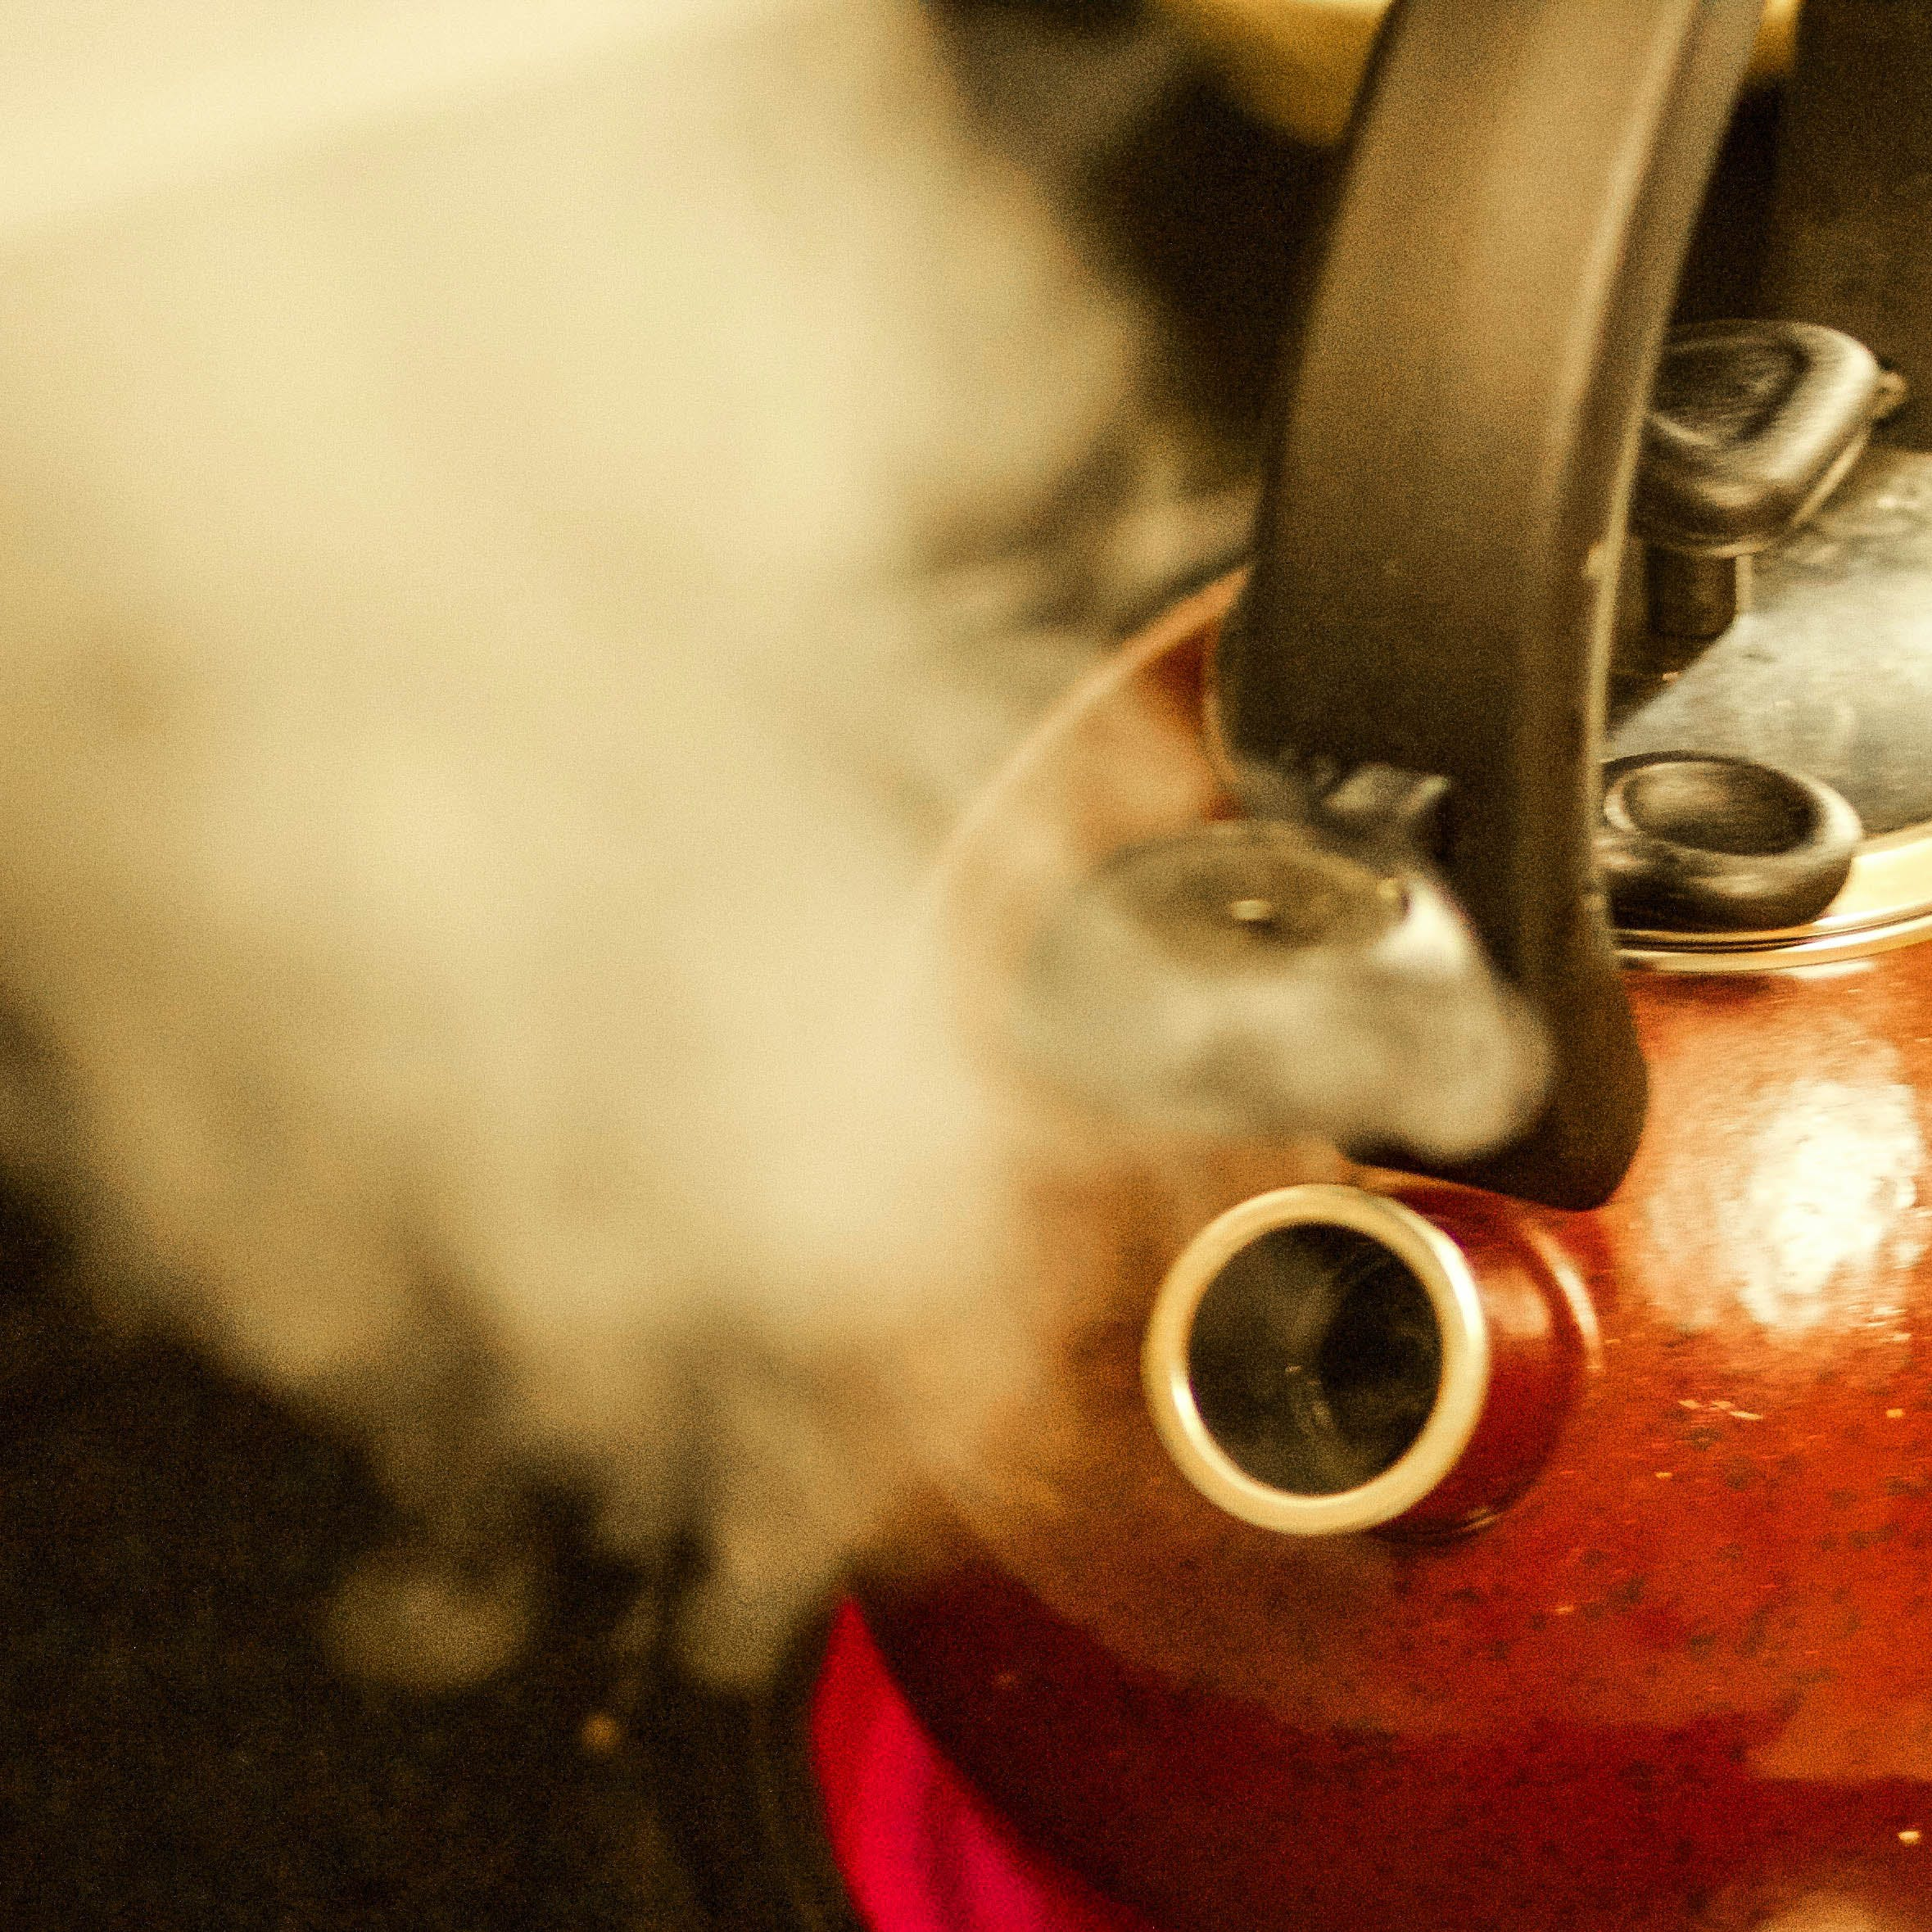 Photography of Kettle Near Smoke